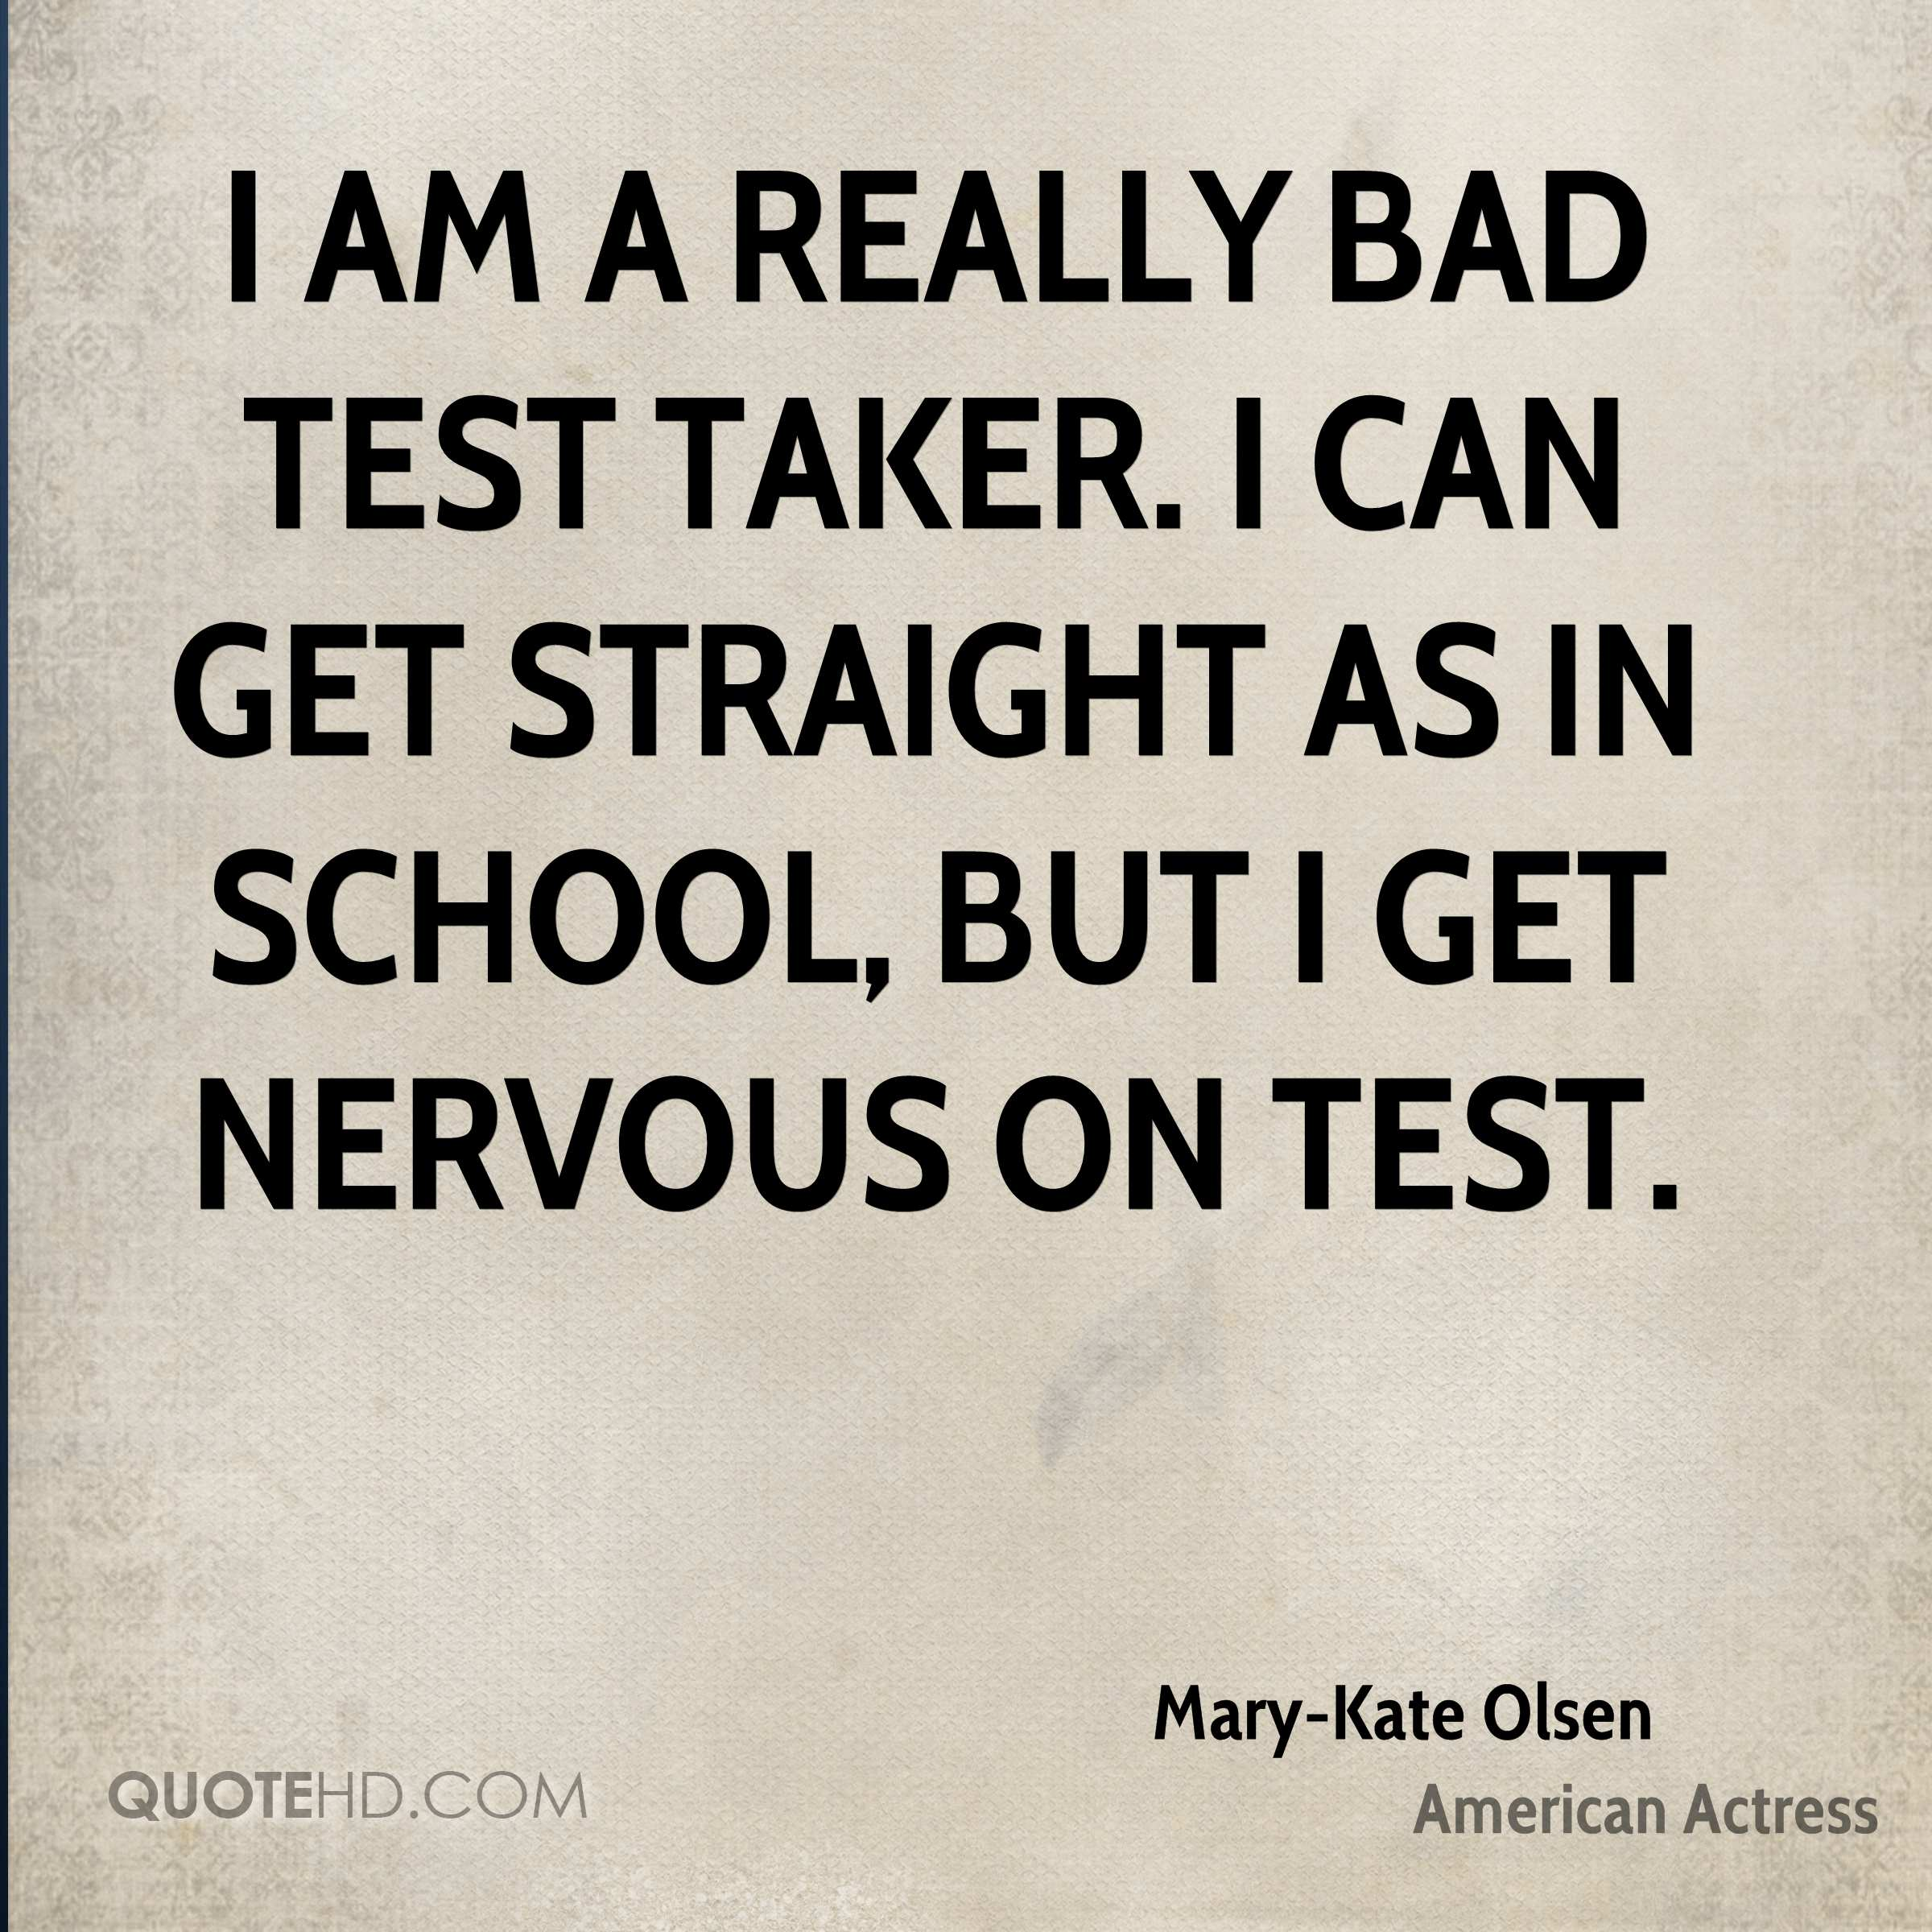 I am a really bad test taker. I can get straight As in school, but I get nervous on test.